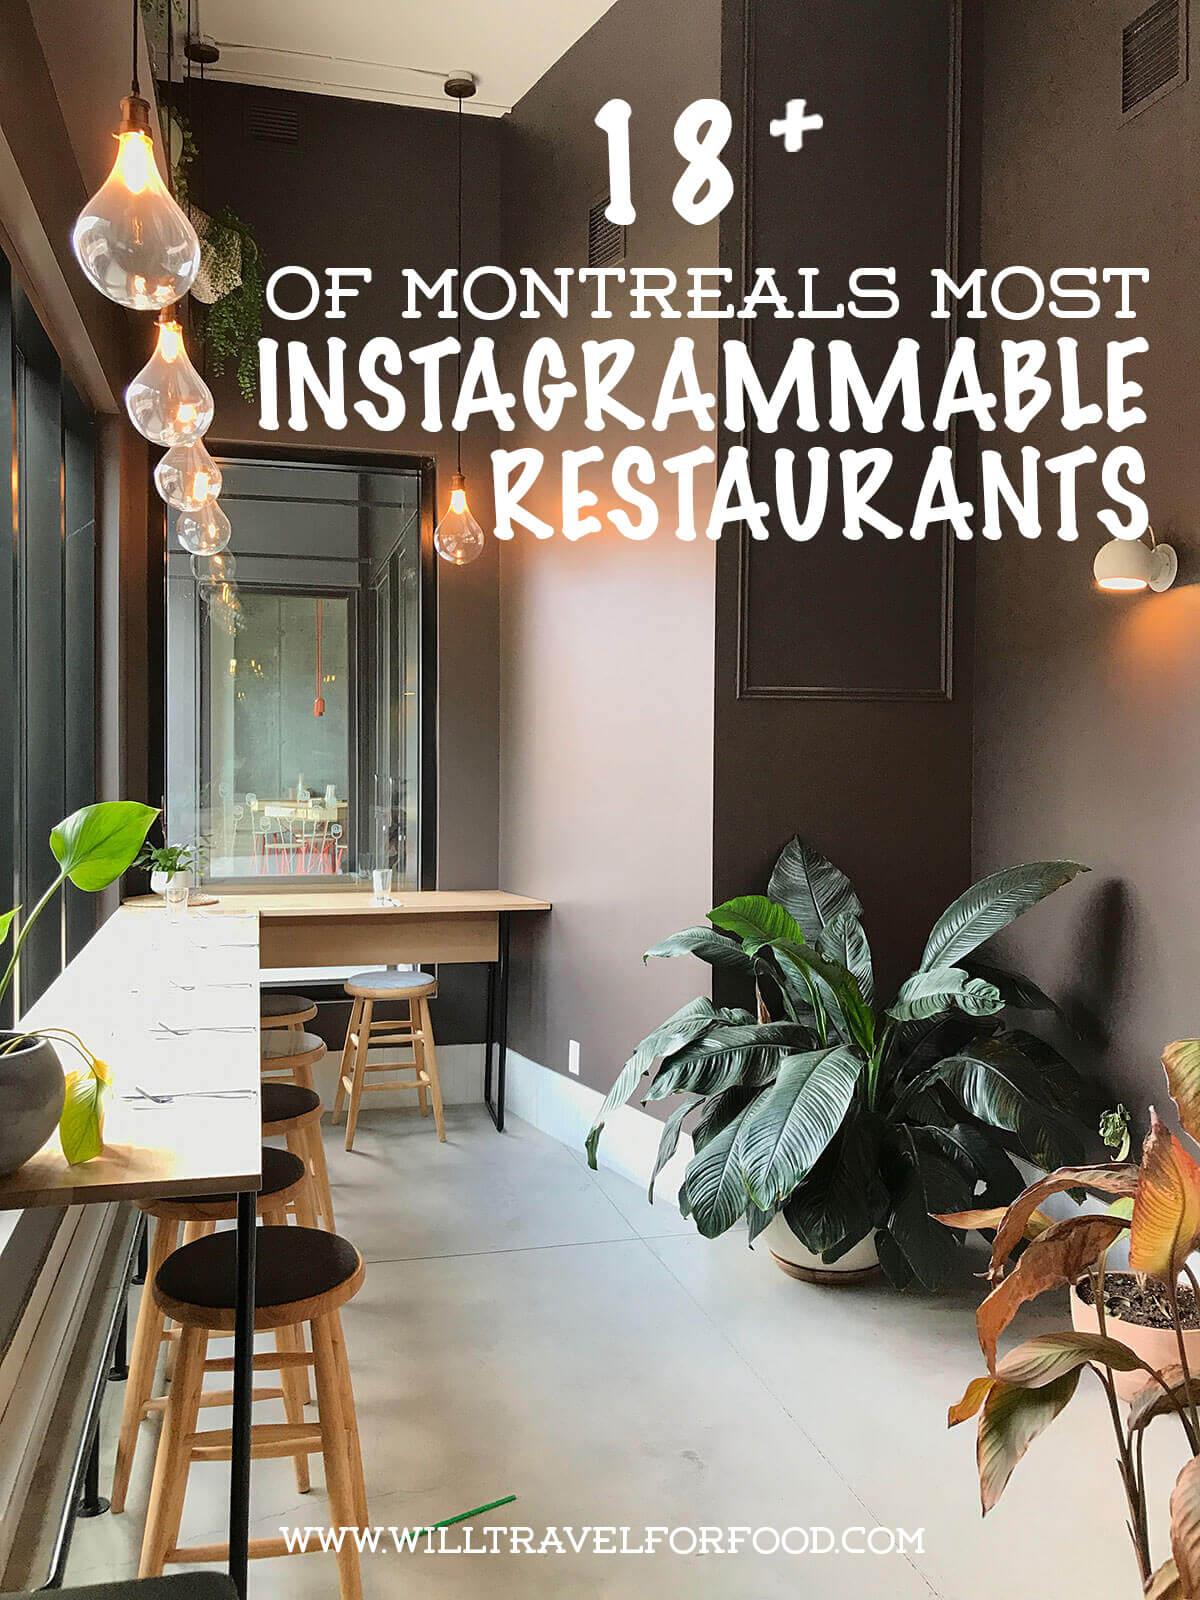 montreal-most-instagrammable-restaurants © Will Travel for Food